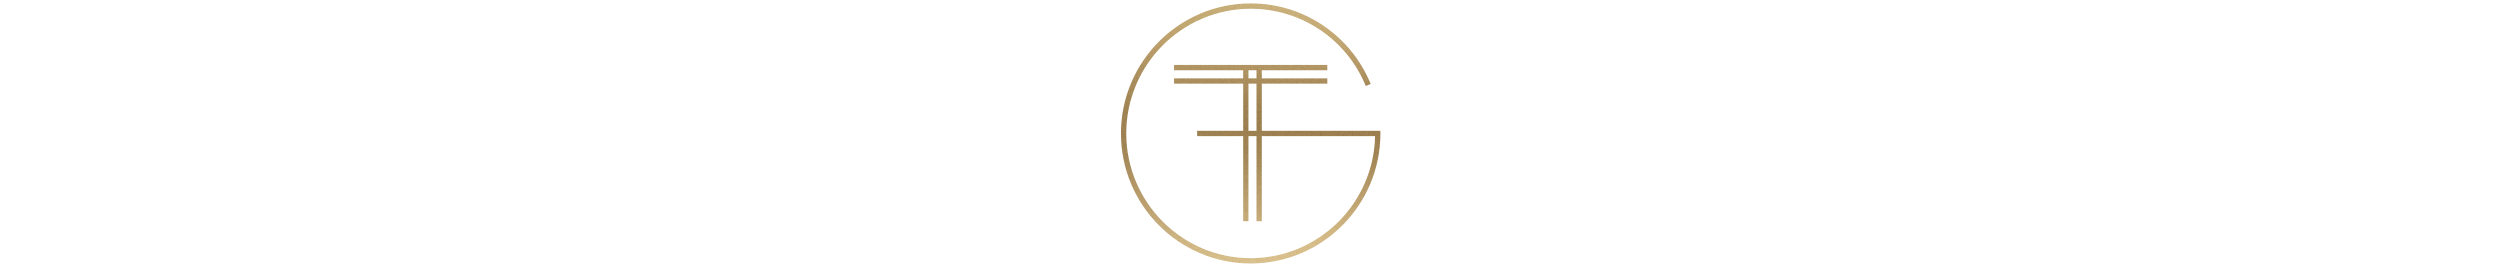 GT_footer_logo_gold.png